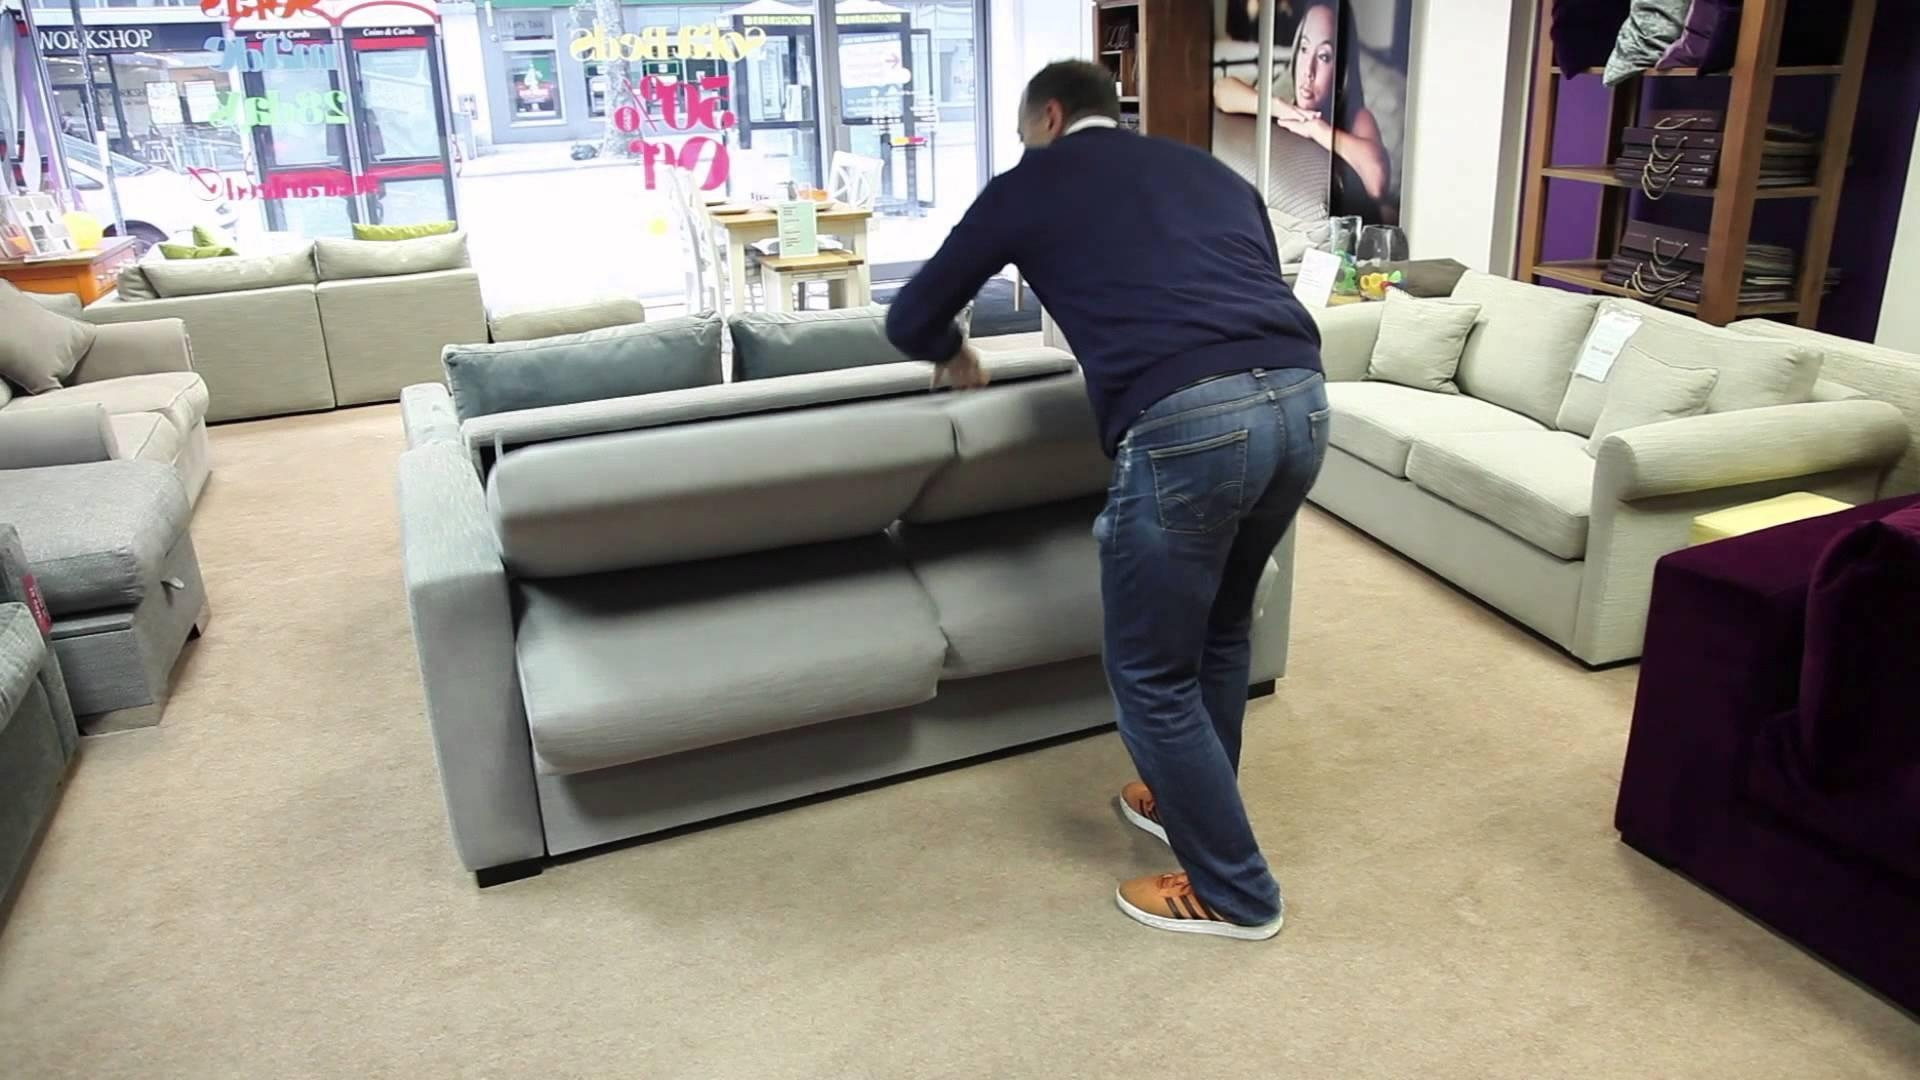 The Best Sofa Bed In The World – Youtube In Most Comfortable Sofabed (Image 21 of 22)